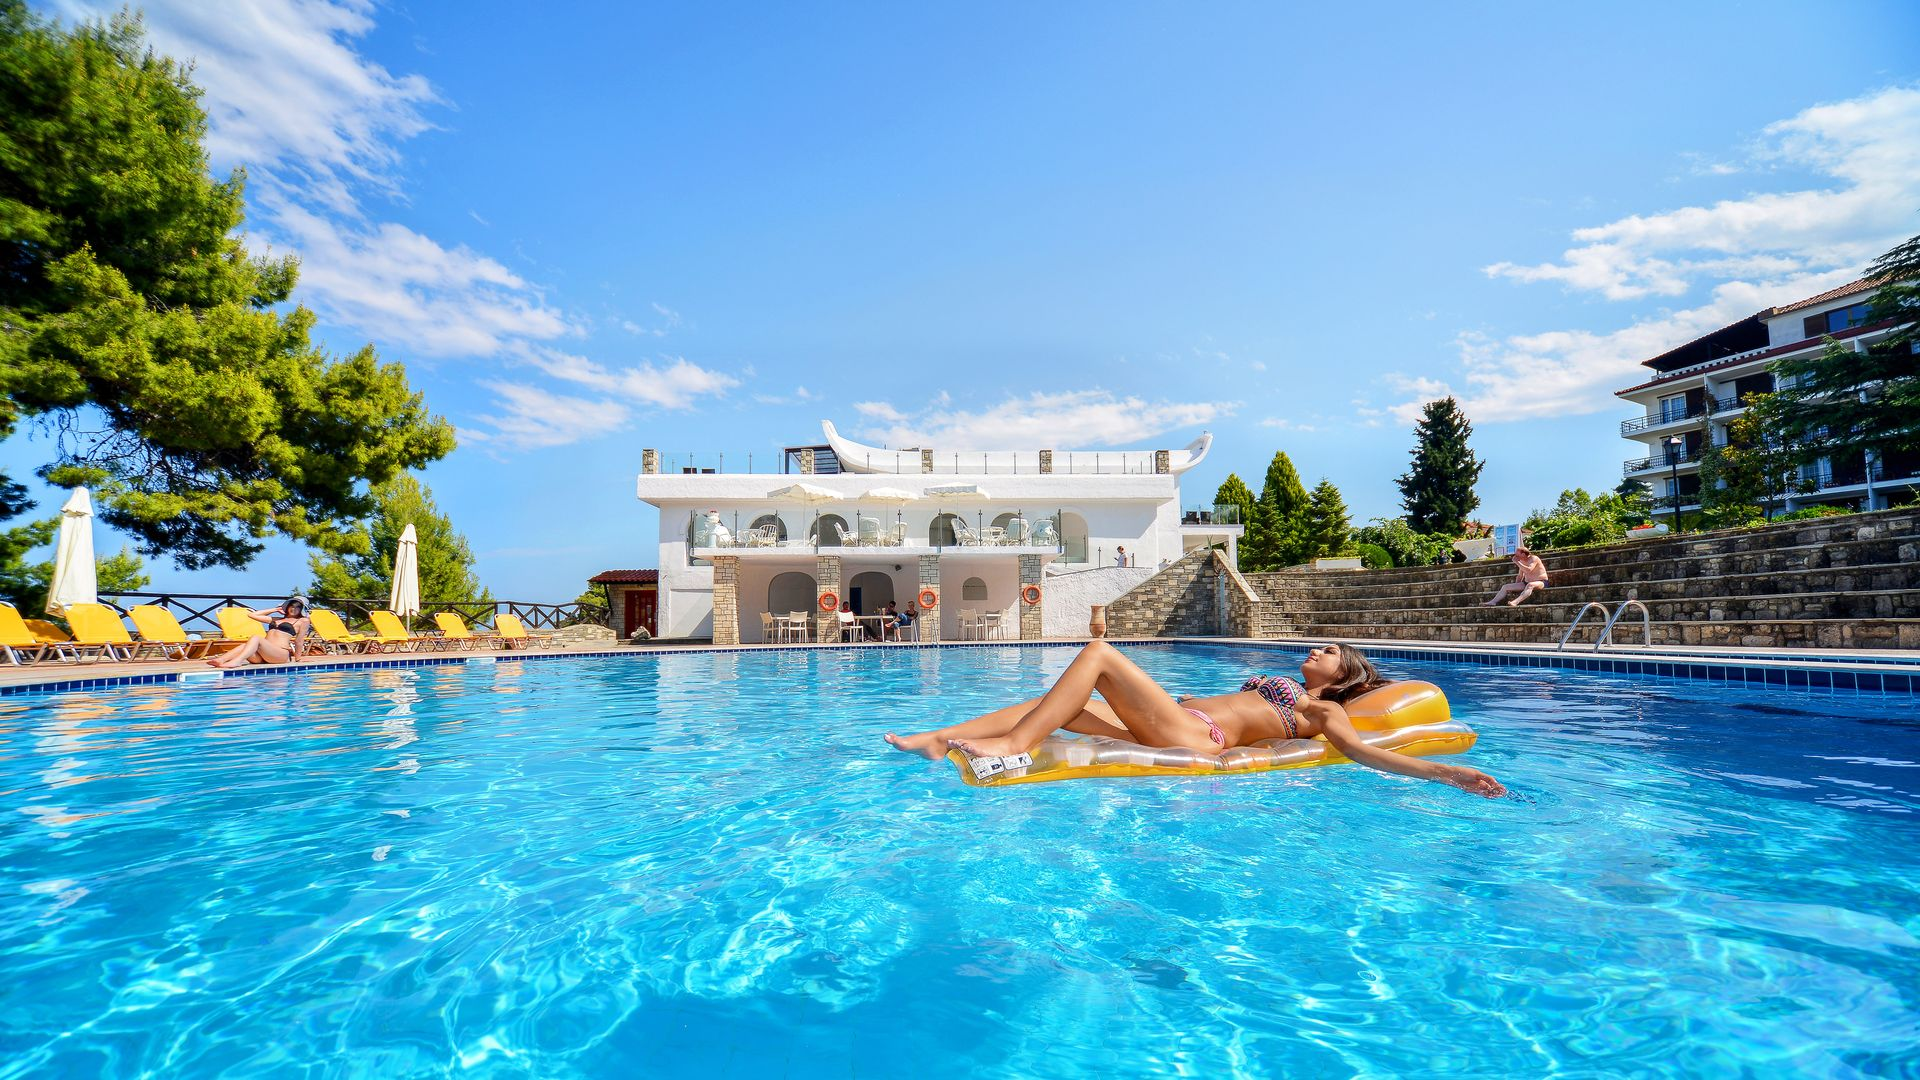 14 DAYS OF HOLIDAYS DREAM PACKAGE